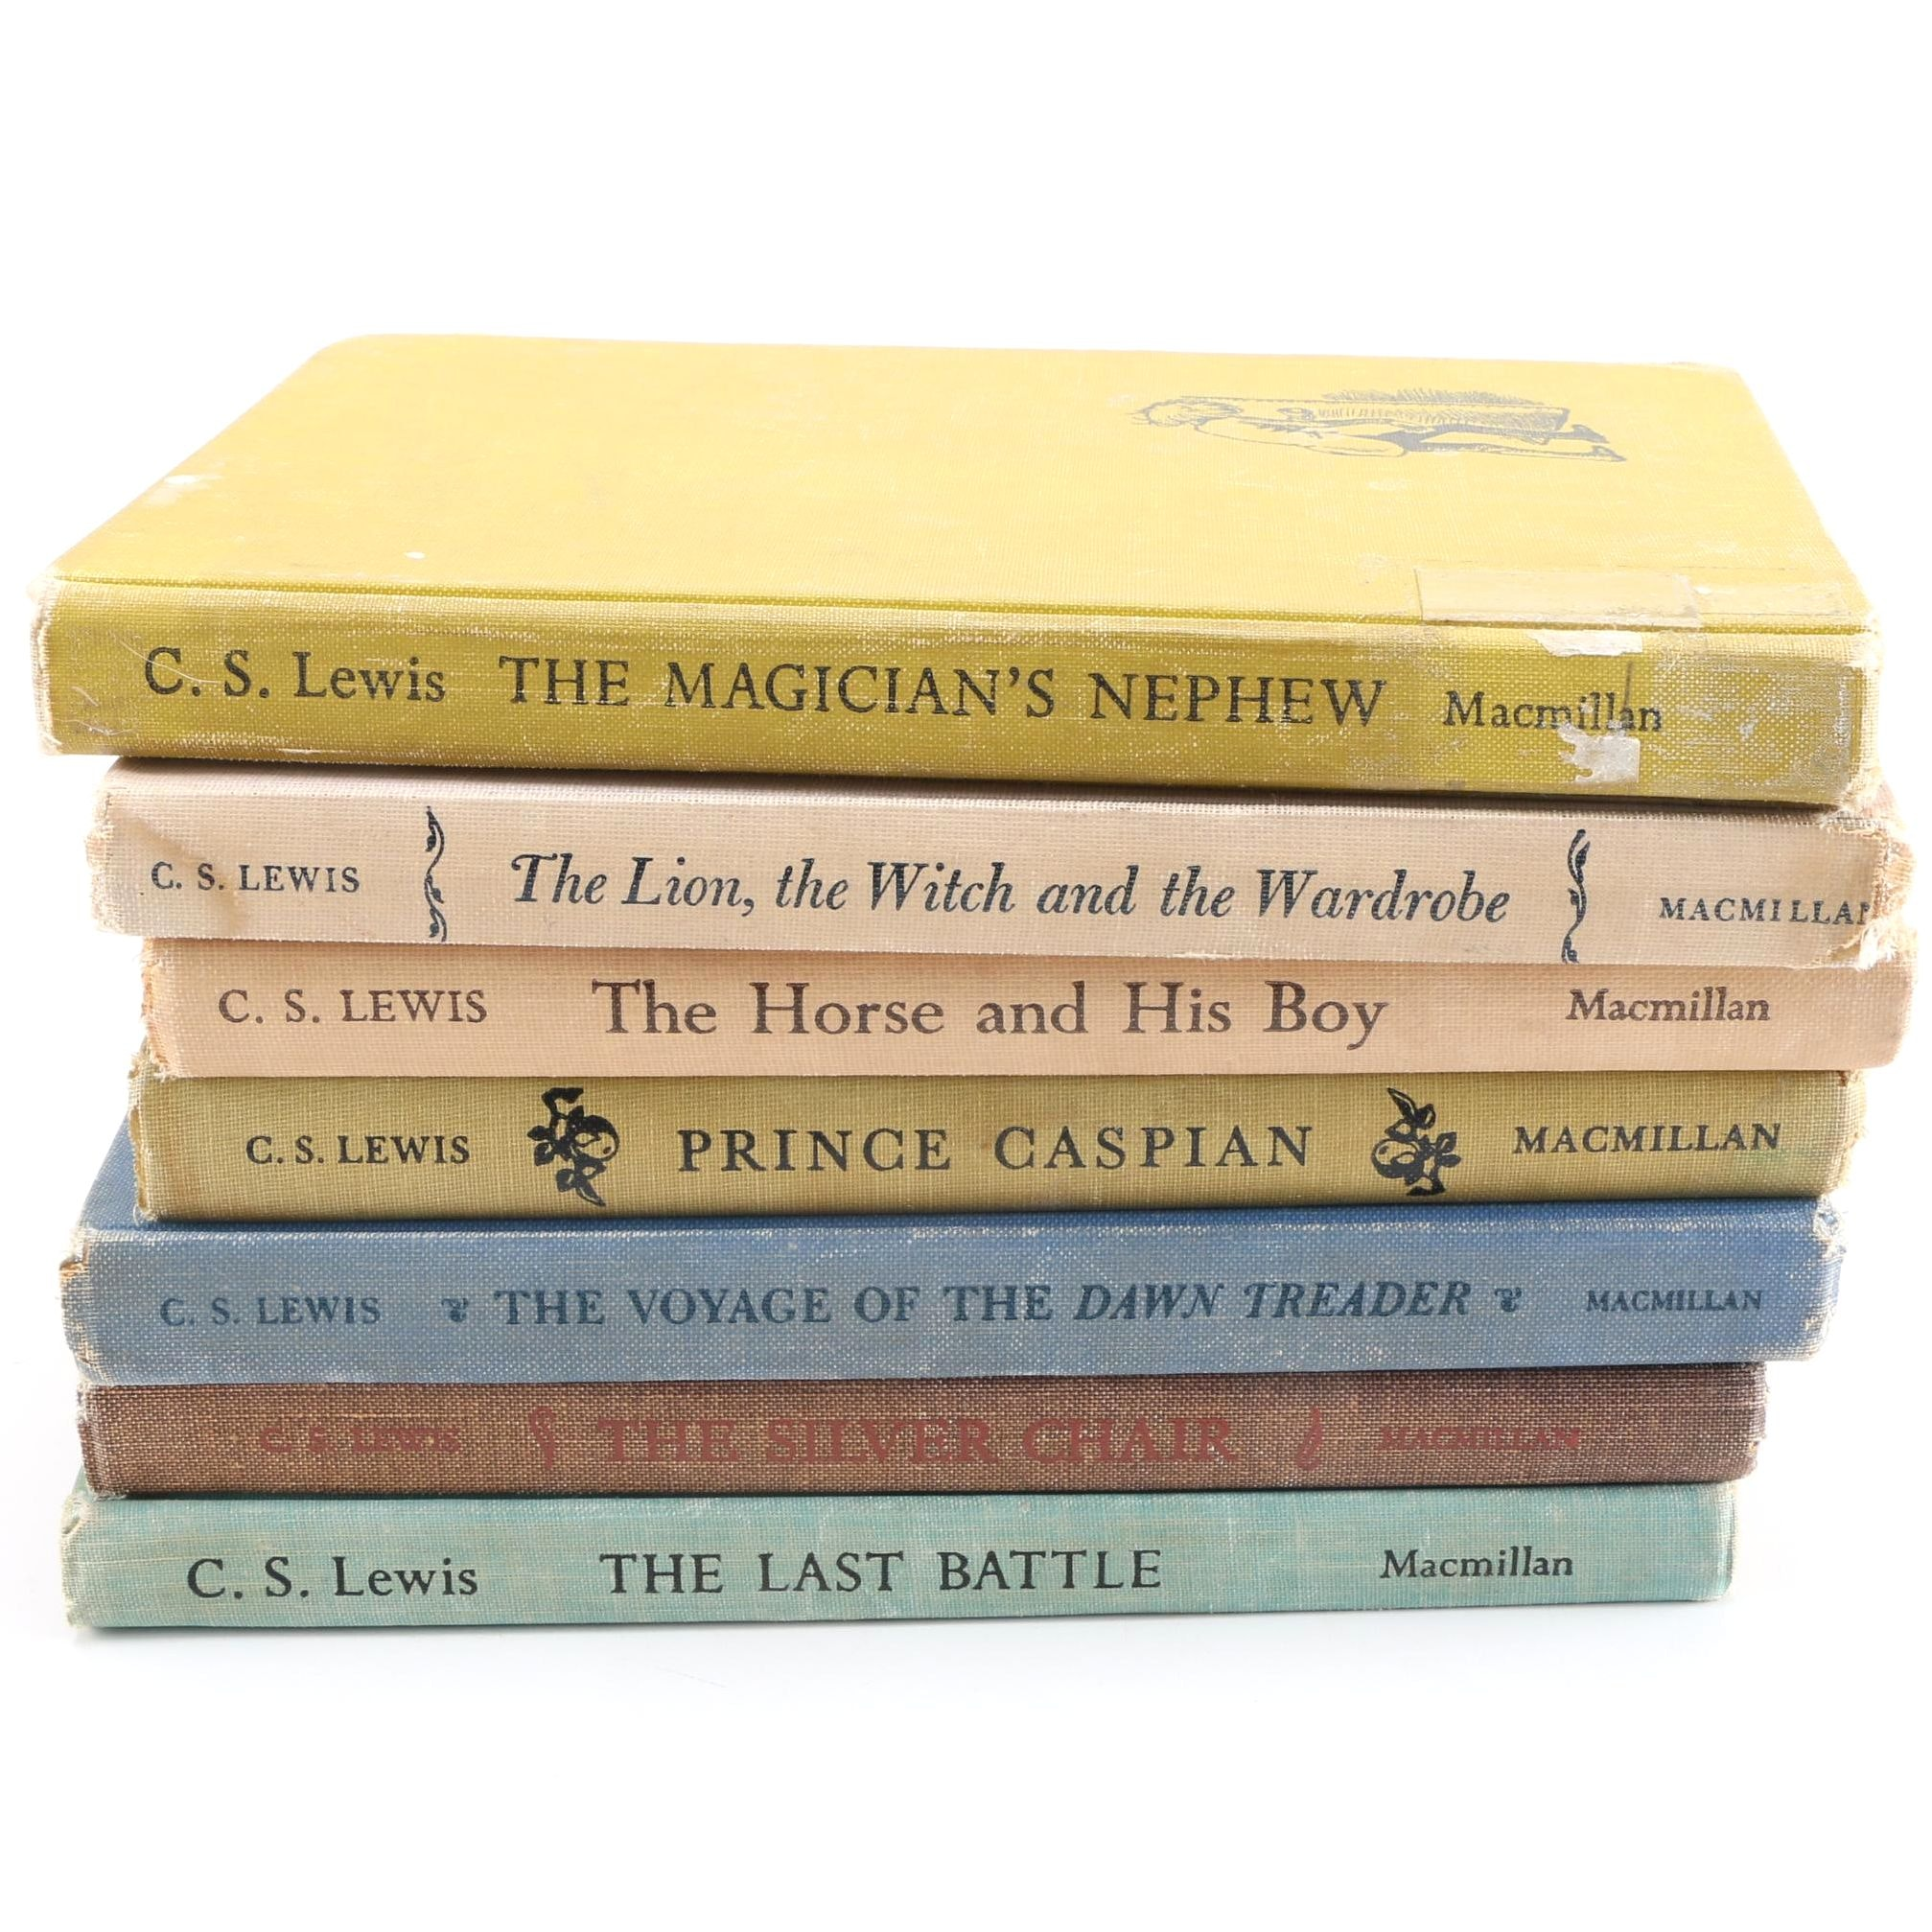 "First American Edition, Later Printings of ""The Chronicles of Narnia"" Series by C.S. Lewis"